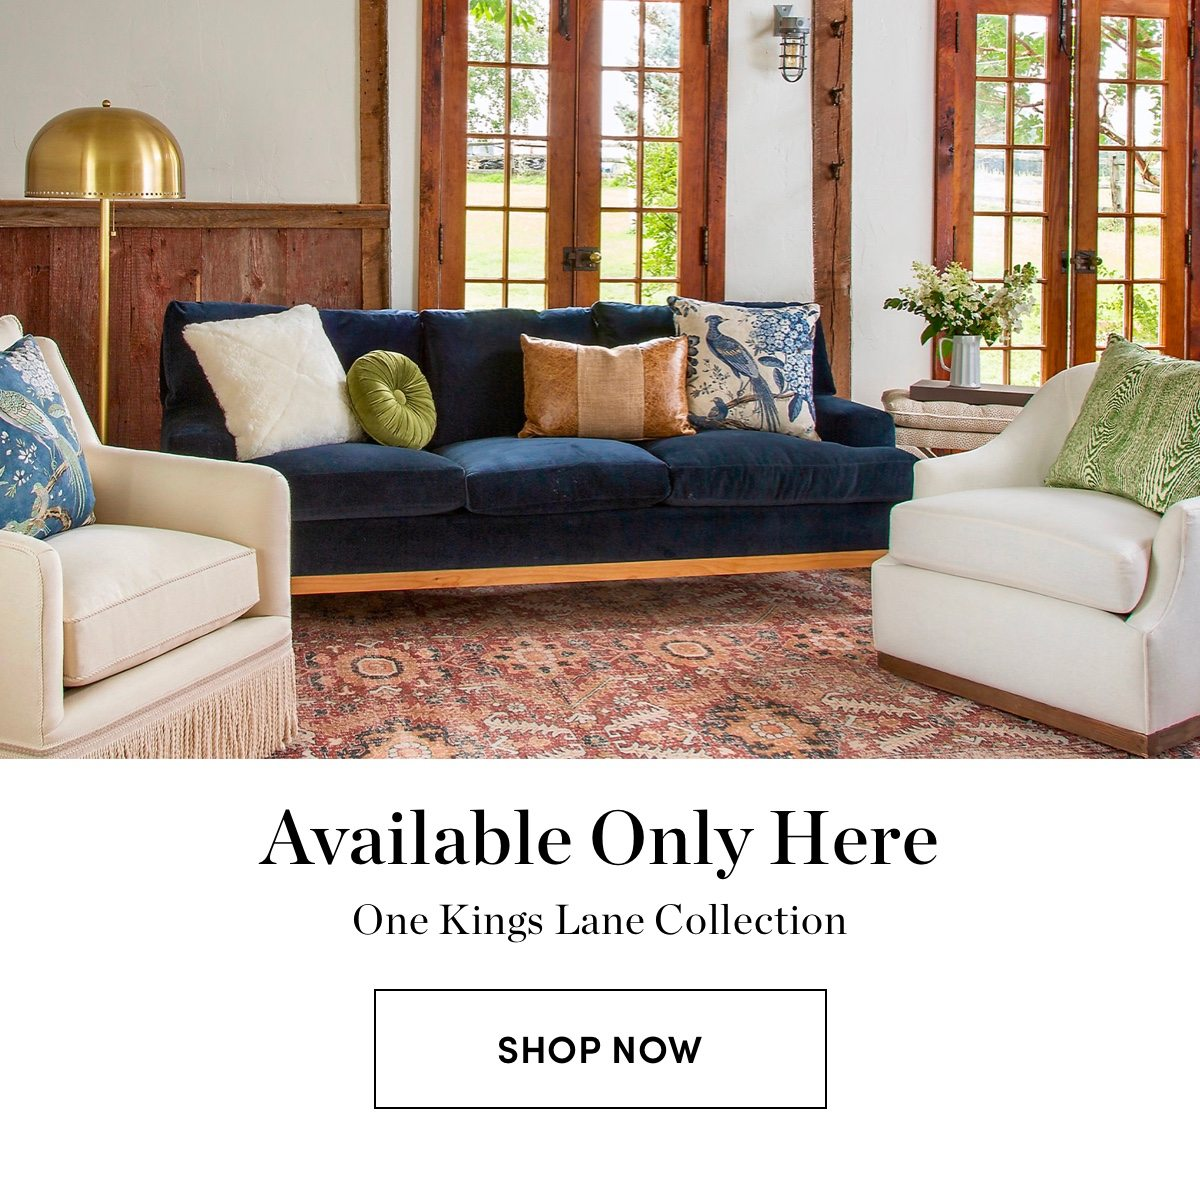 One Kings Lane Collection